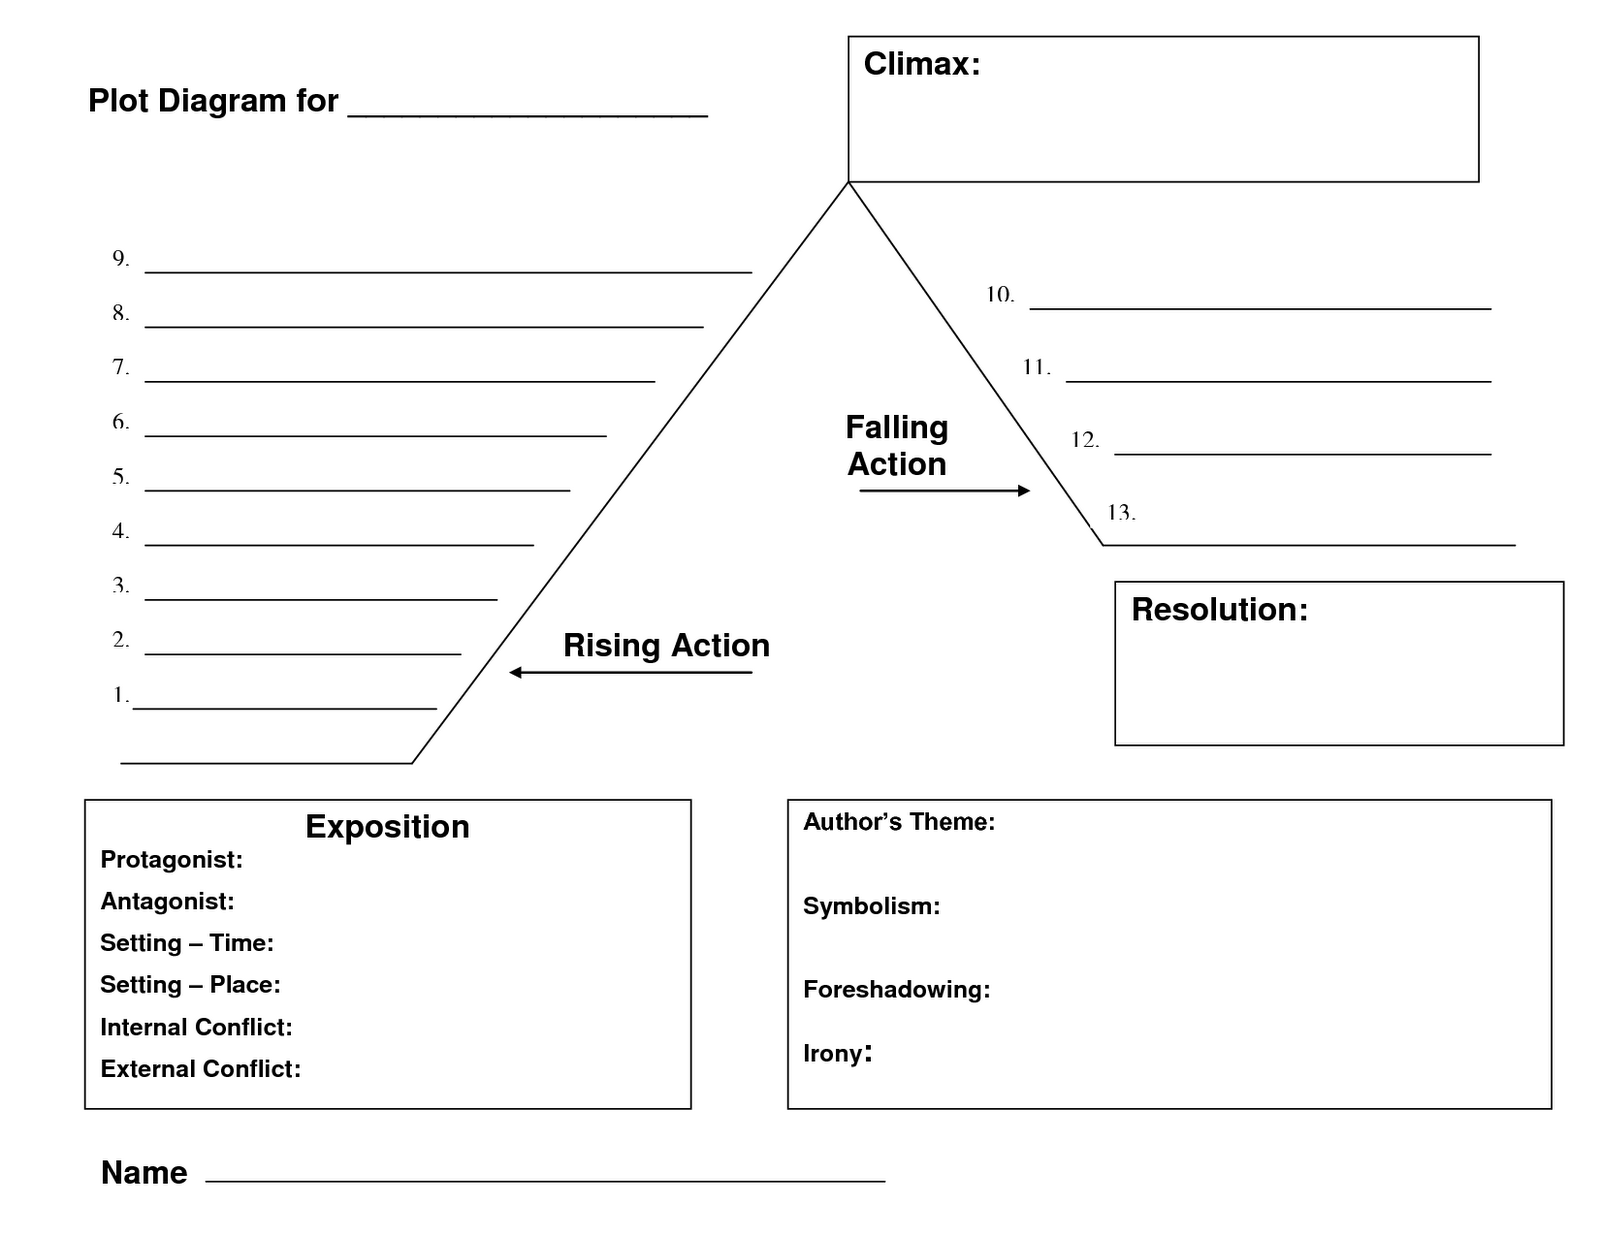 plot diagram plot diagram png teaching graphic plot diagram homepage readwritethink the plot diagram is an organizational tool focusing on a pyramid or triangular shape which is used to map the